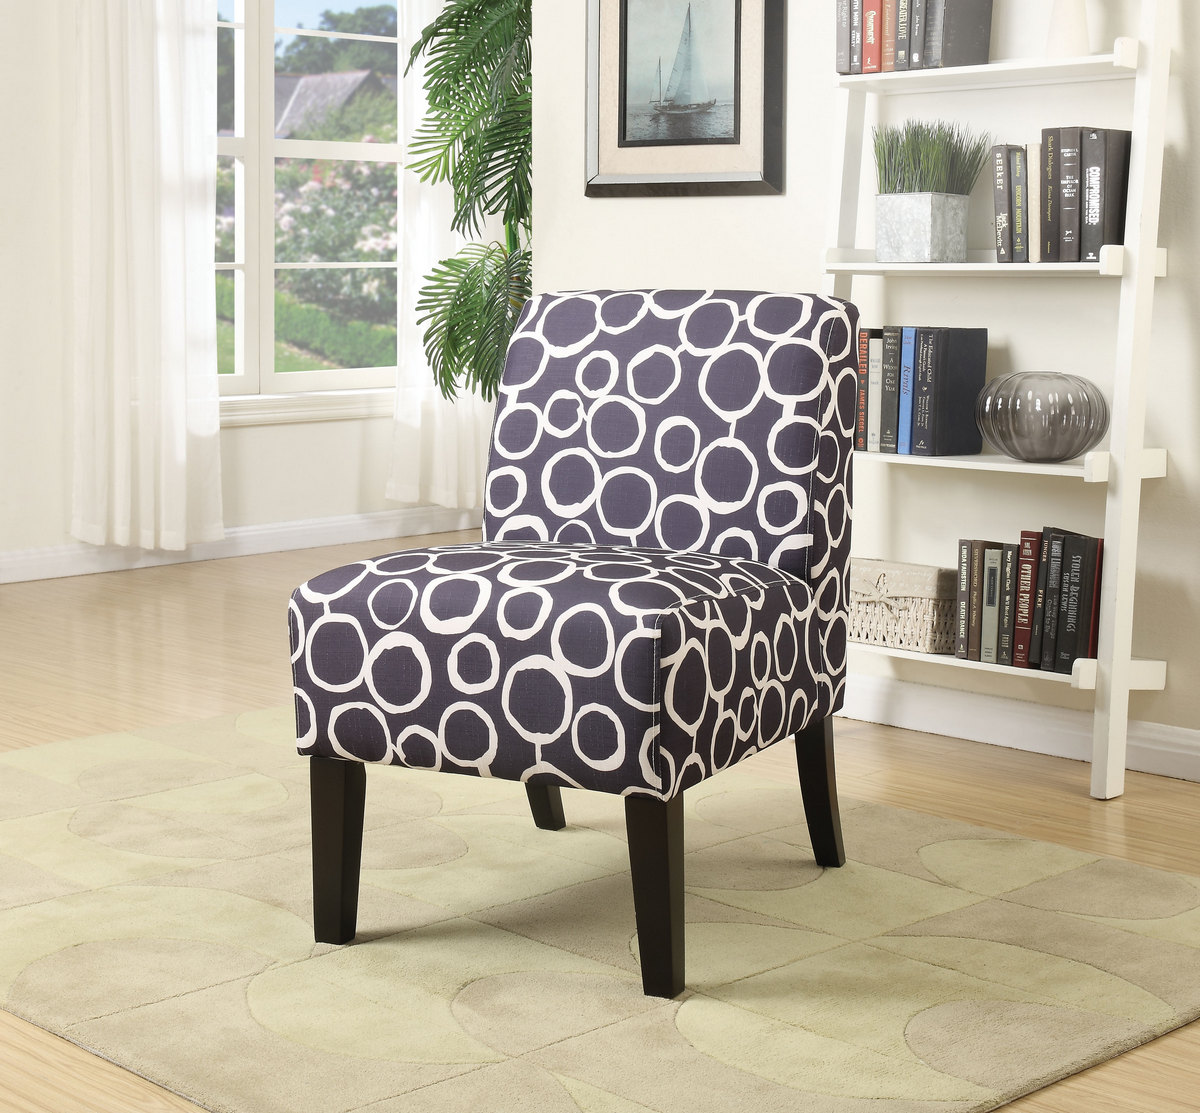 Miraculous Ollano Accent Chair In Pattern Fabric Acme Furniture 59507 Gmtry Best Dining Table And Chair Ideas Images Gmtryco